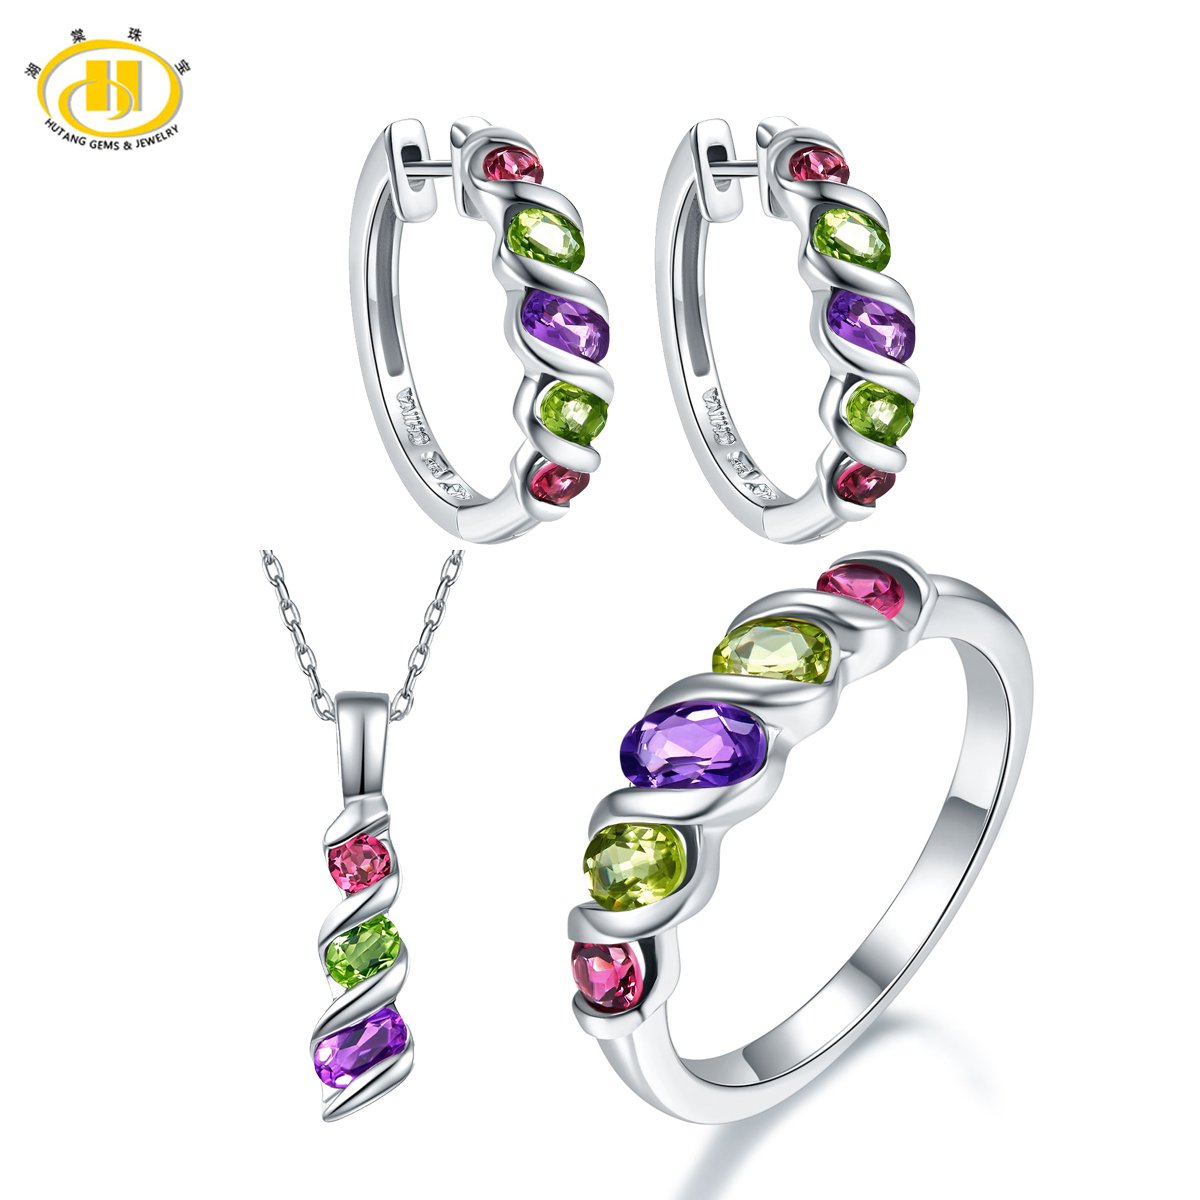 Hutang New Fashion Design Colorful Gemstone Jewelry Sets for Women Solid 925 Sterling Silver Jewellry Ring Pendant Earrings Gift цена